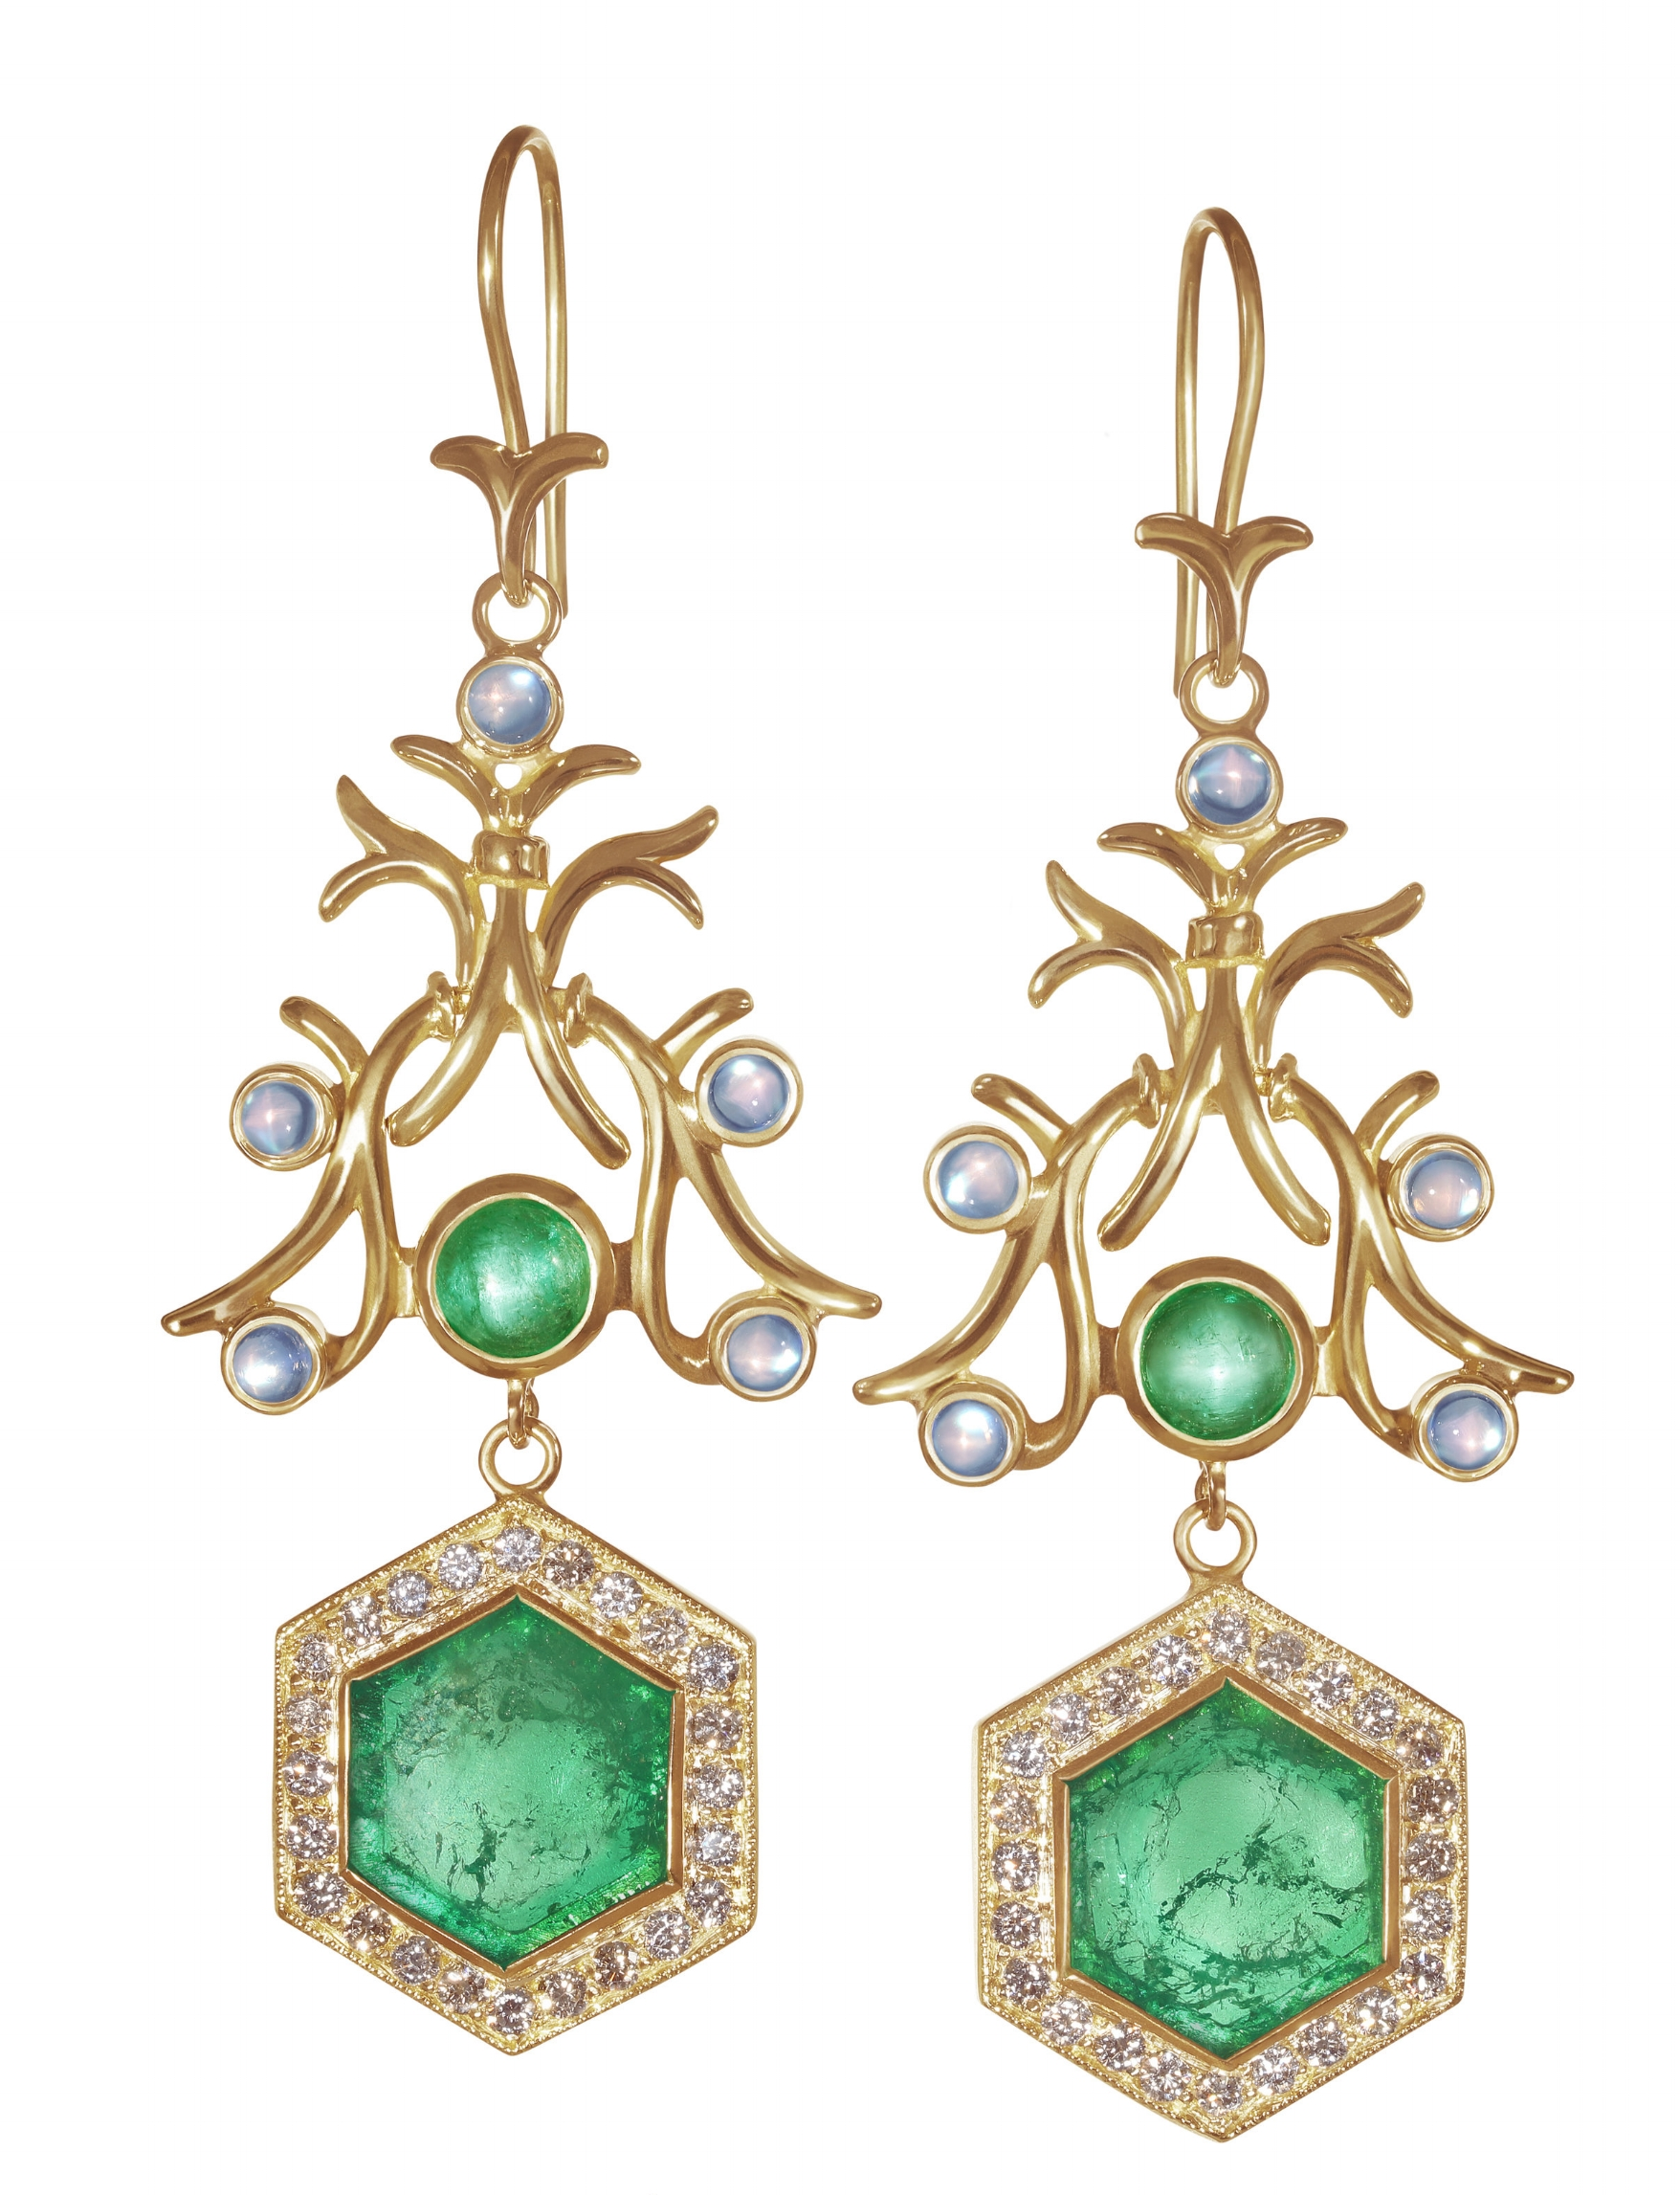 Serenity Chandelier Earrings